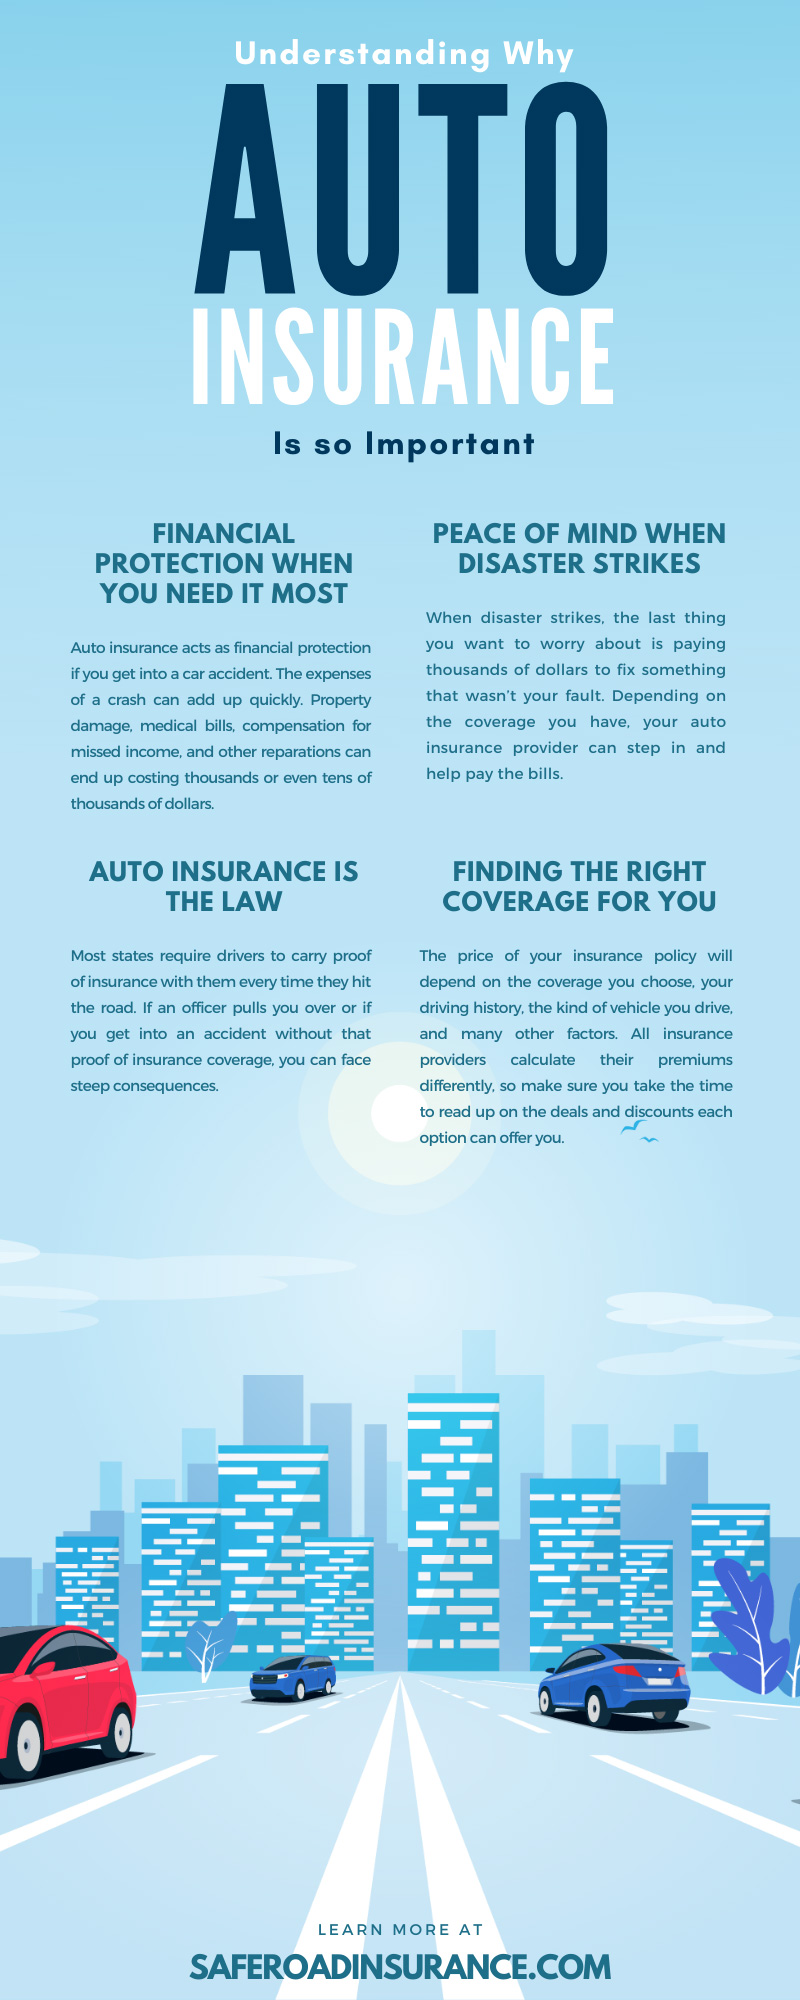 Understanding Why Auto Insurance Is so Important